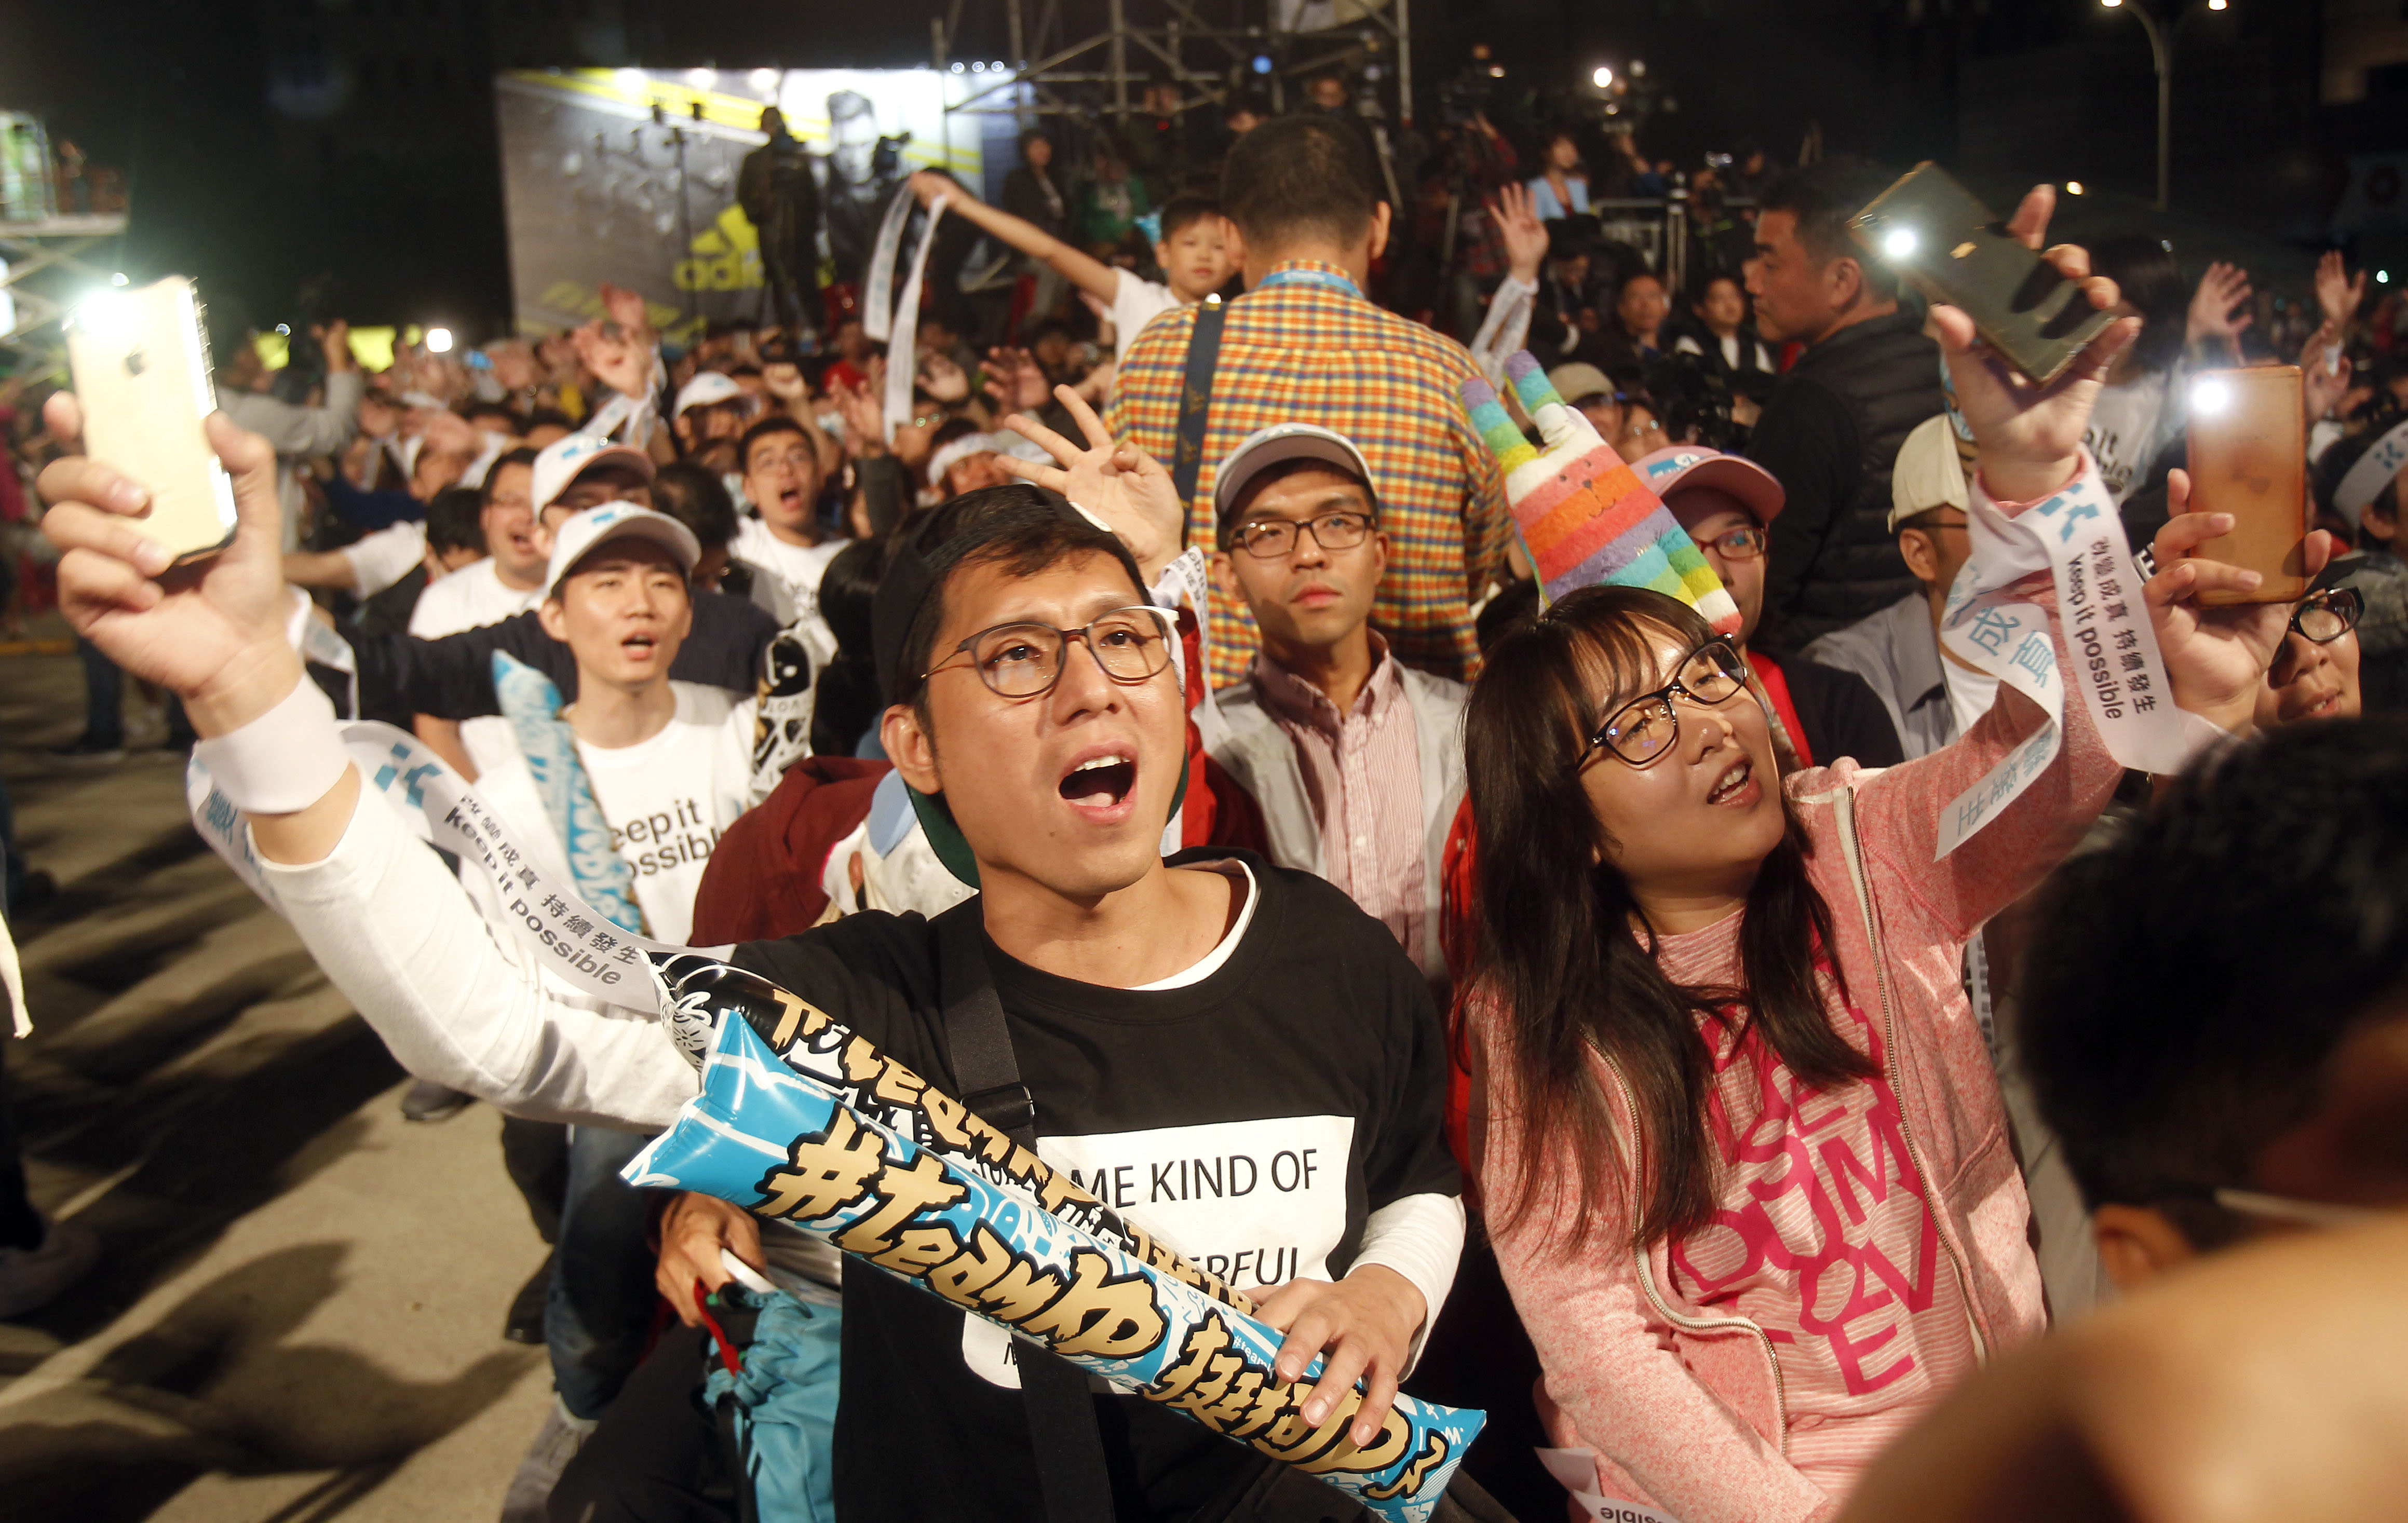 Supporters of Taipei city mayor and city mayoral candidate Ko Wen-je cheer for Ko's victory in Taipei, Taiwan, Sunday early morning, Nov. 25, 2018. Taiwan's ruling party suffered a major defeat Saturday in local elections seen as a referendum on the administration of the island's independence-leaning president amid growing economic and political pressure from China. (AP Photo/Chiang Ying-ying)